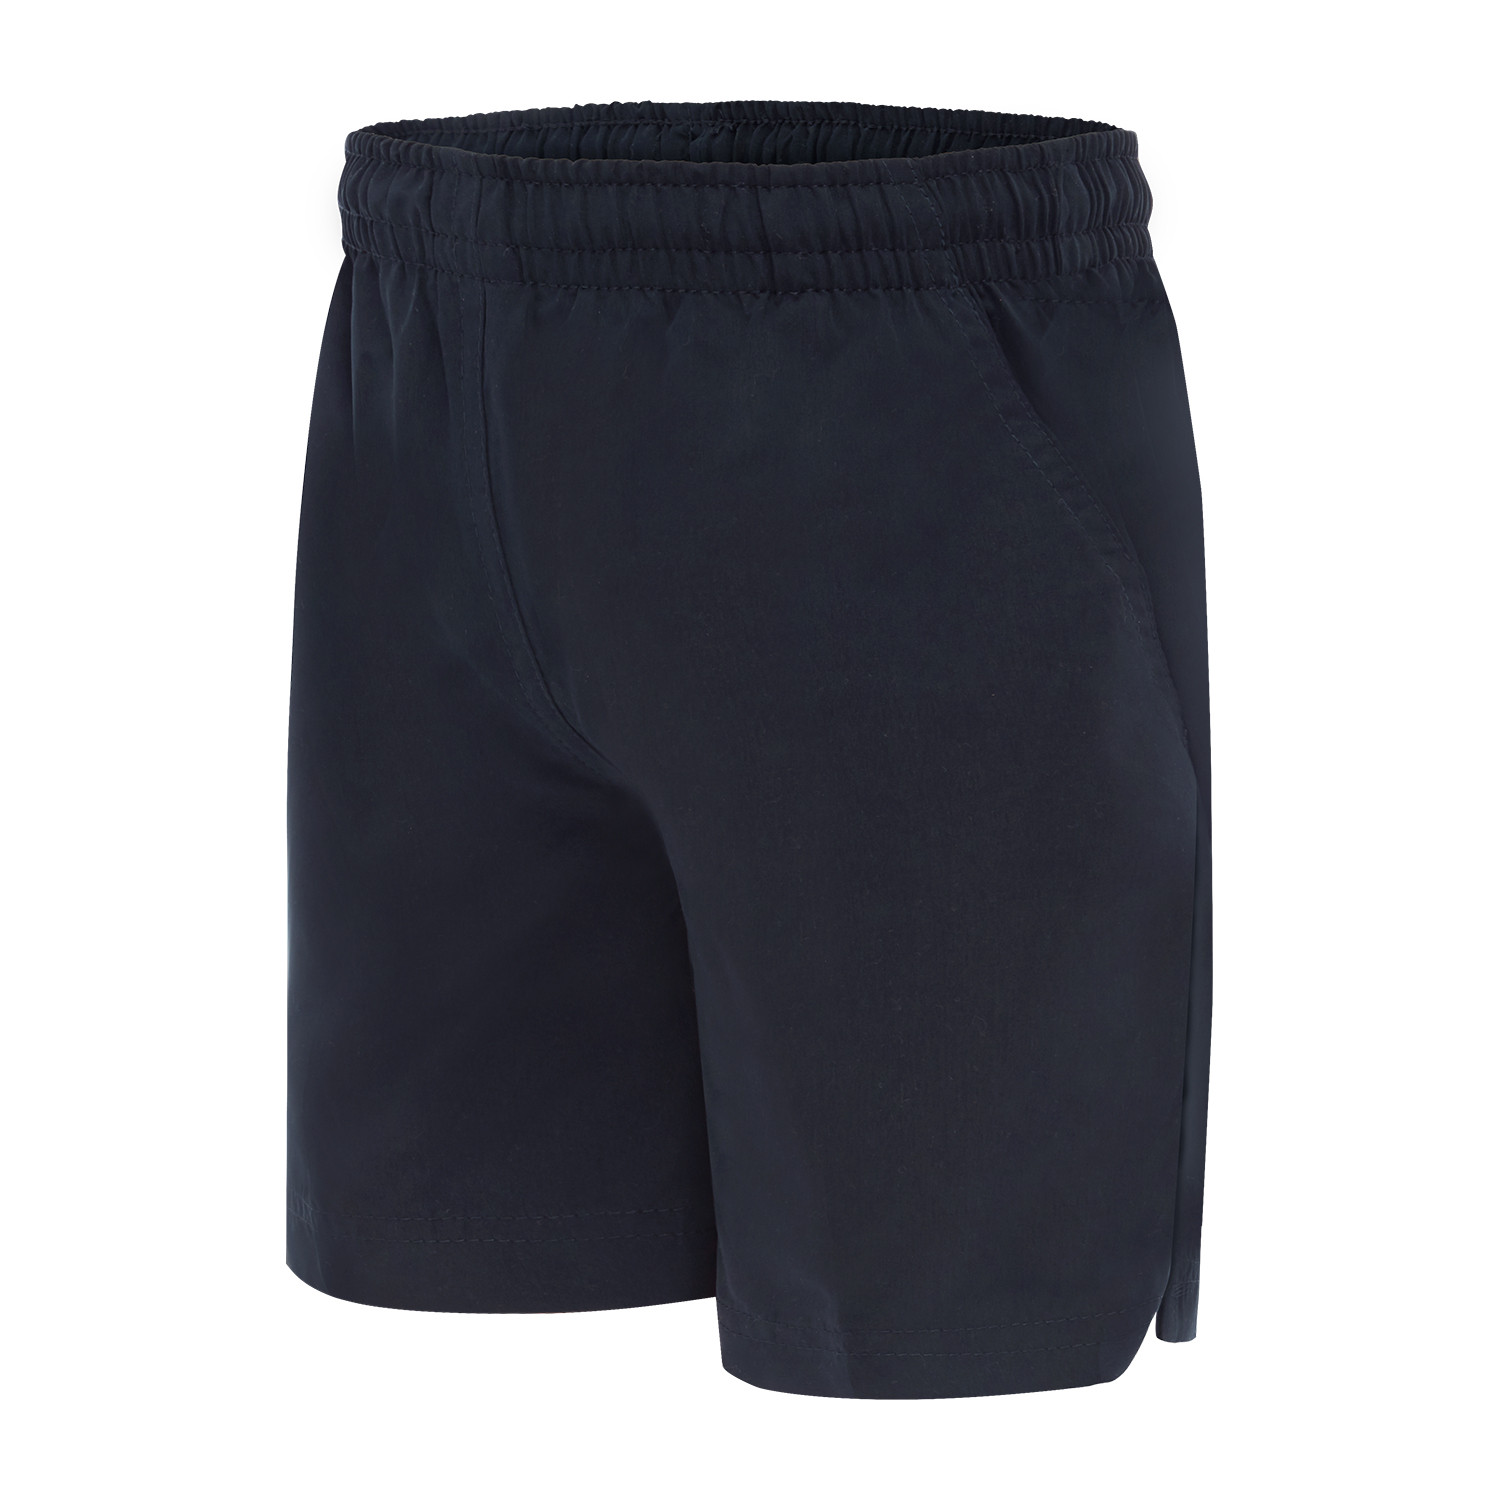 Withnell Girls Sport Shorts